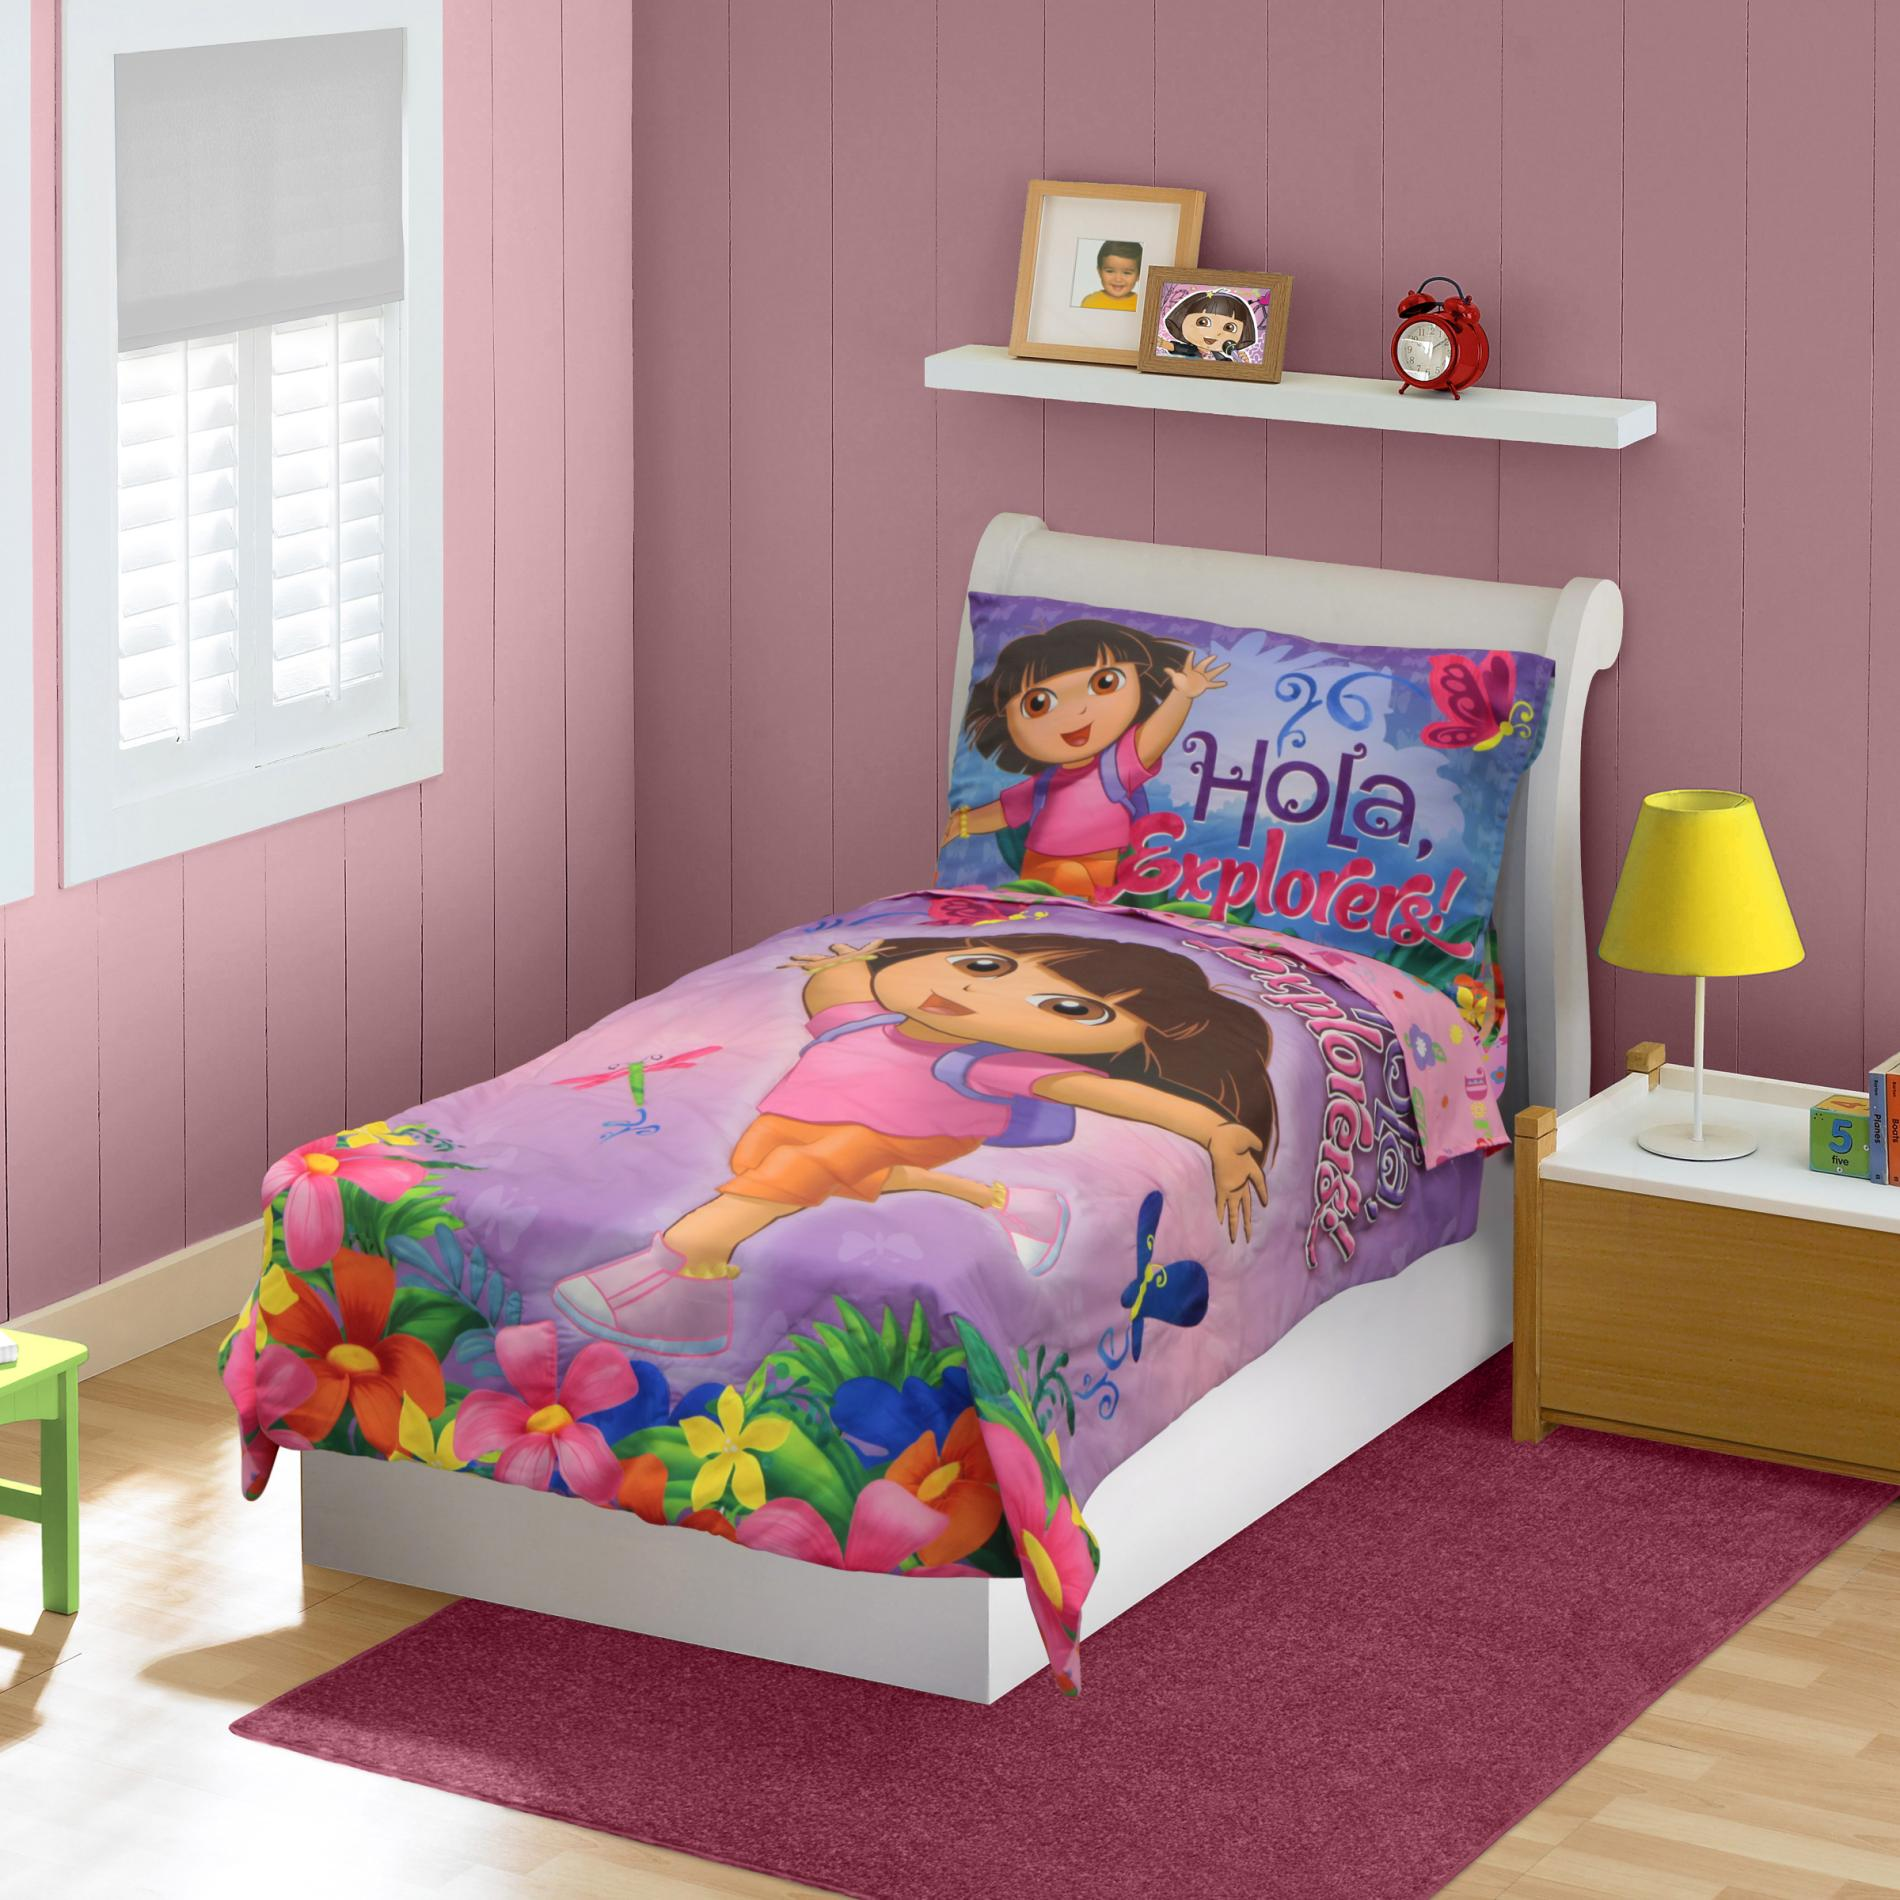 Nickelodeon Dora the Explorer Toddler Girl's 4-Piece Bedding Set